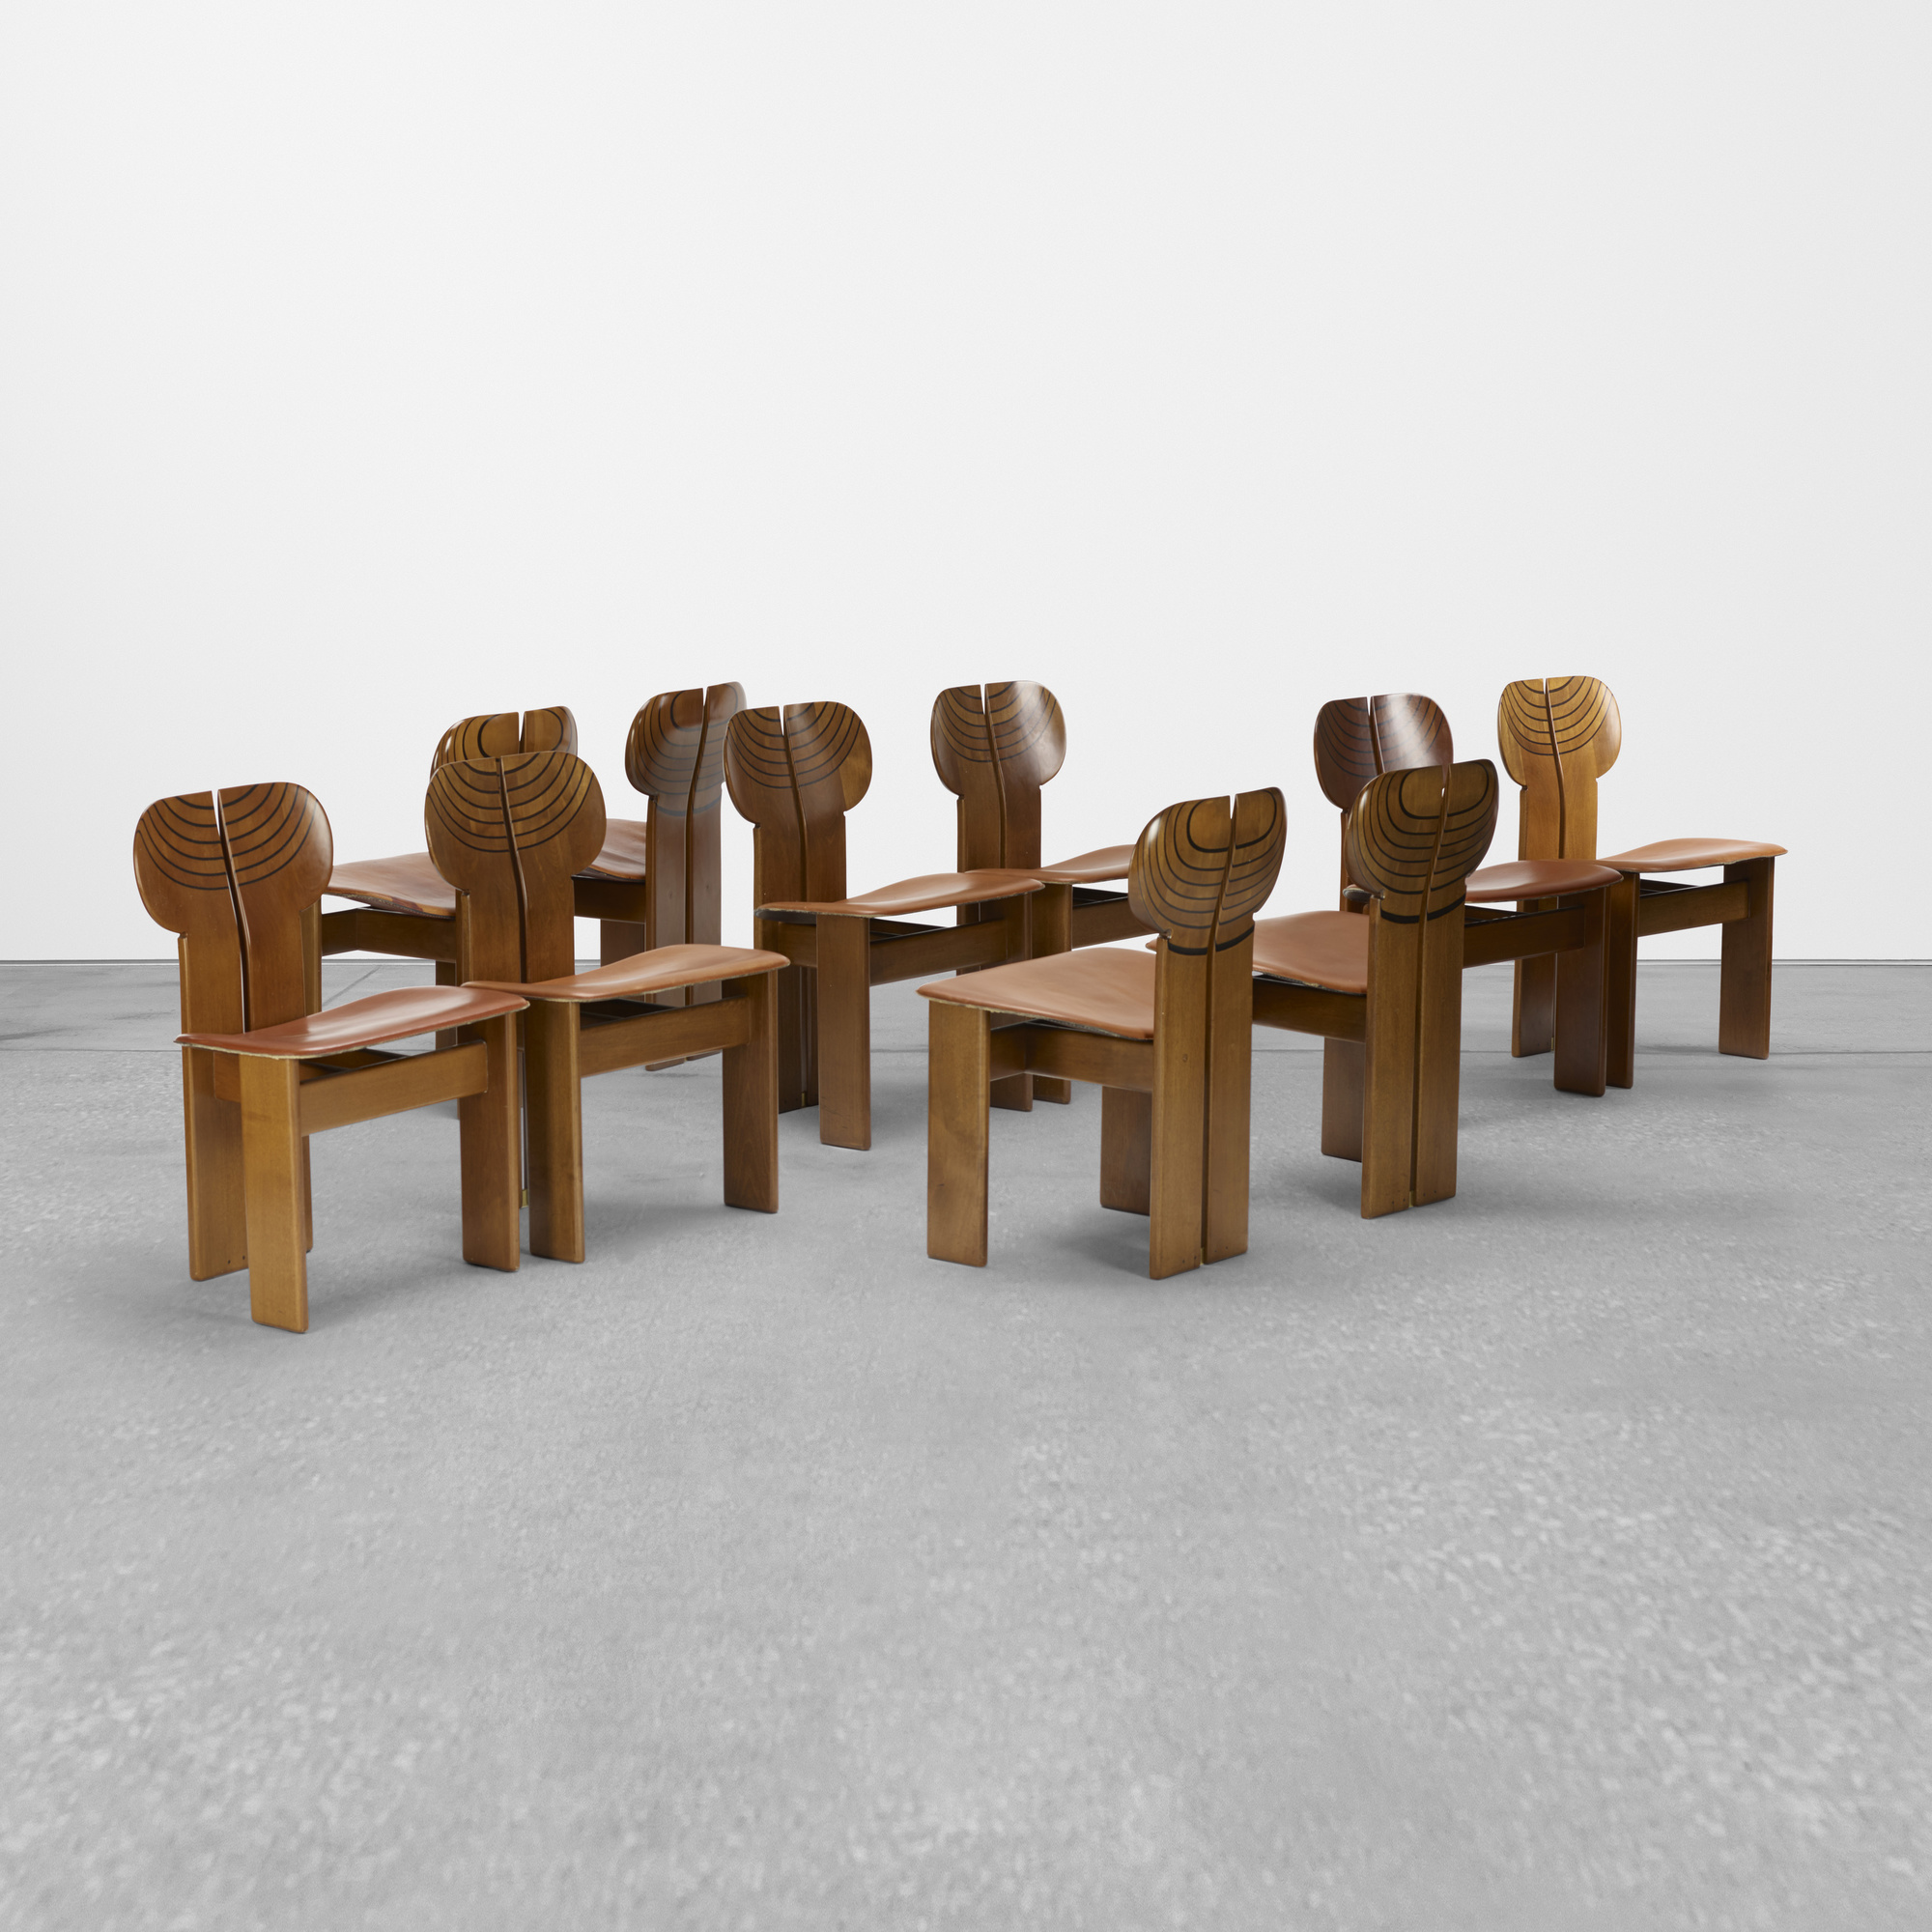 227: Afra and Tobia Scarpa / set of ten Africa chairs from the Artona series (1 of 4)